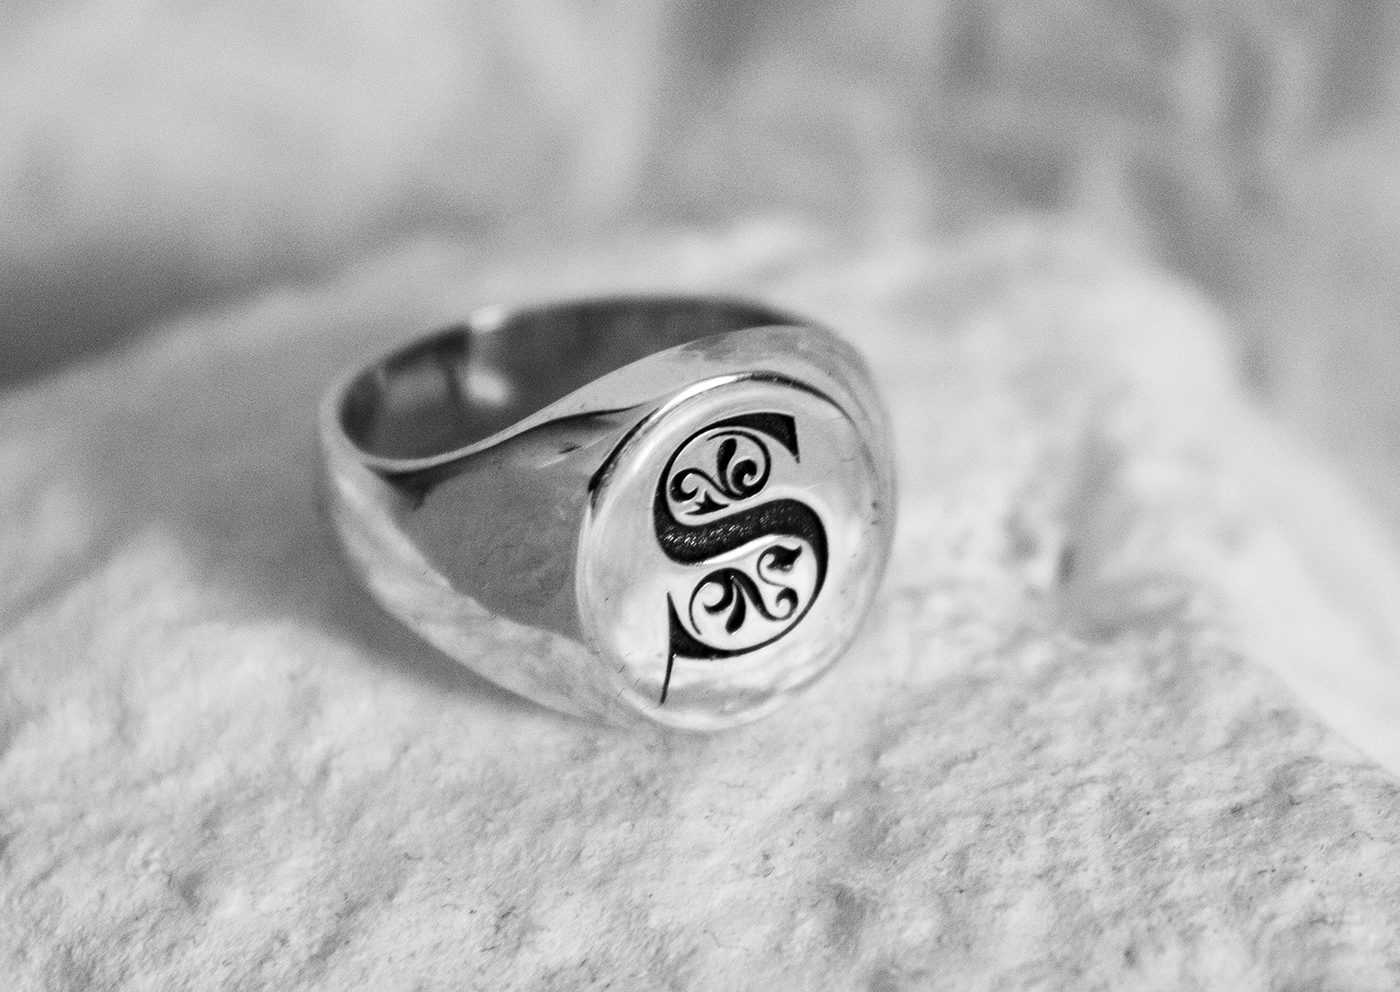 Custom silver rings. Unique silver rings made in Italy